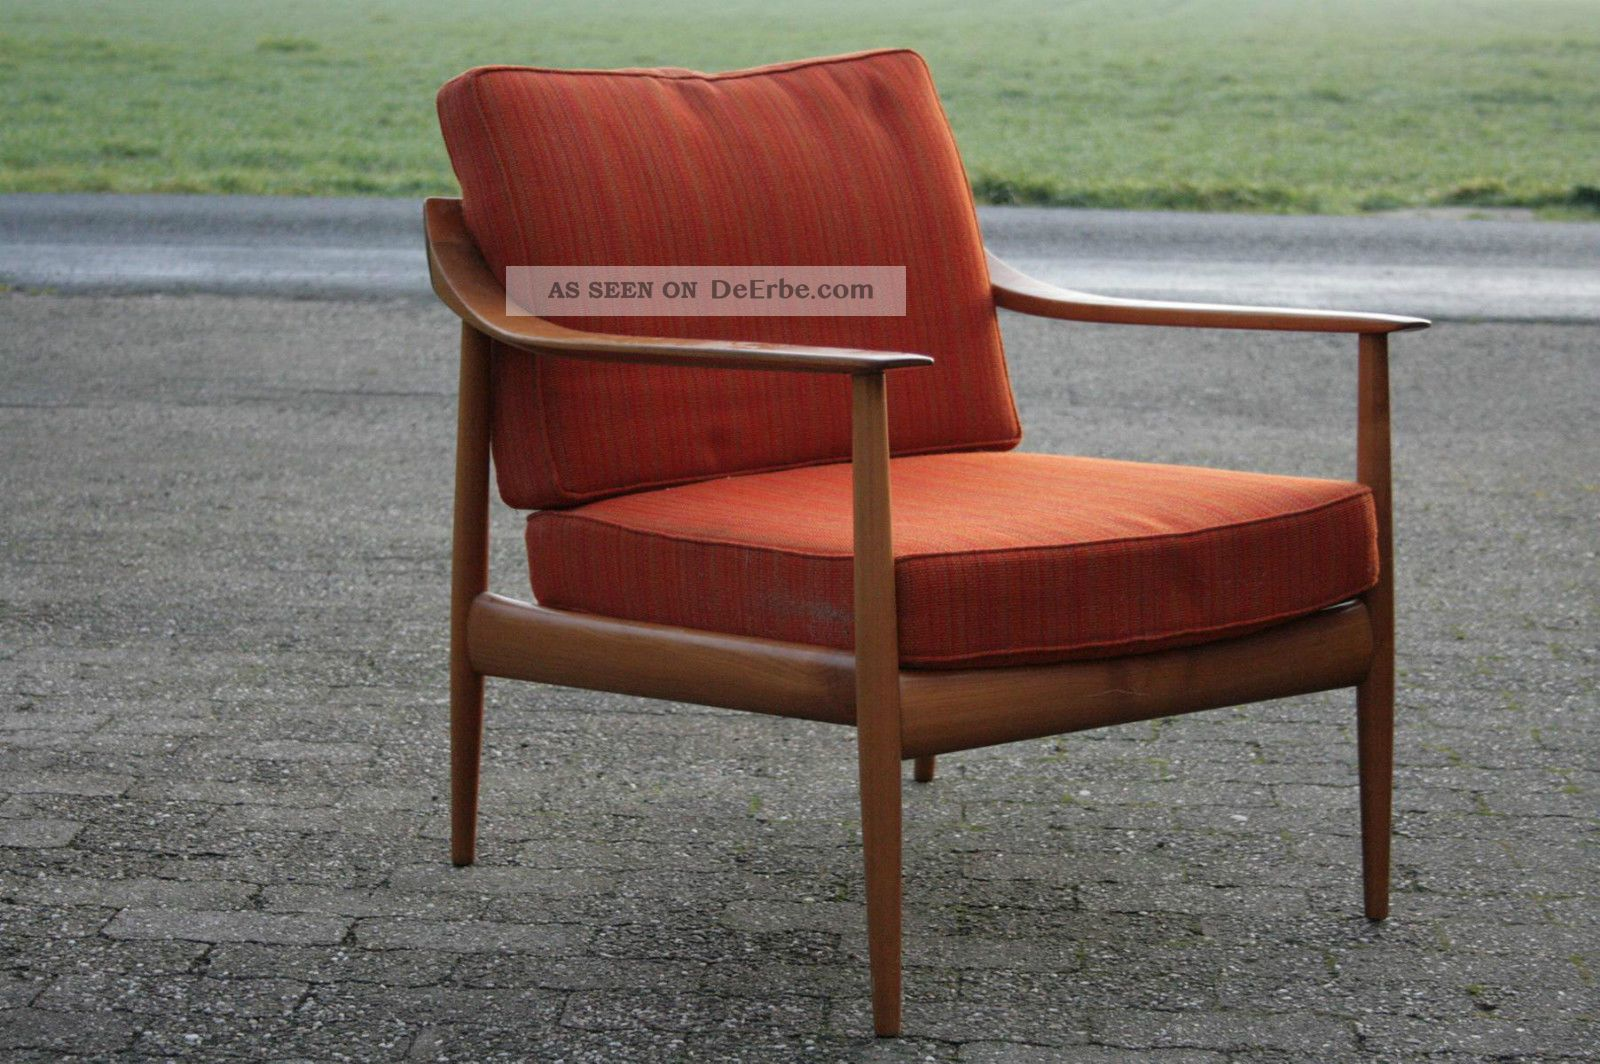 Knoll antimott sessel chair 50er 60er jahre mid century for Sessel 60er jahre stil